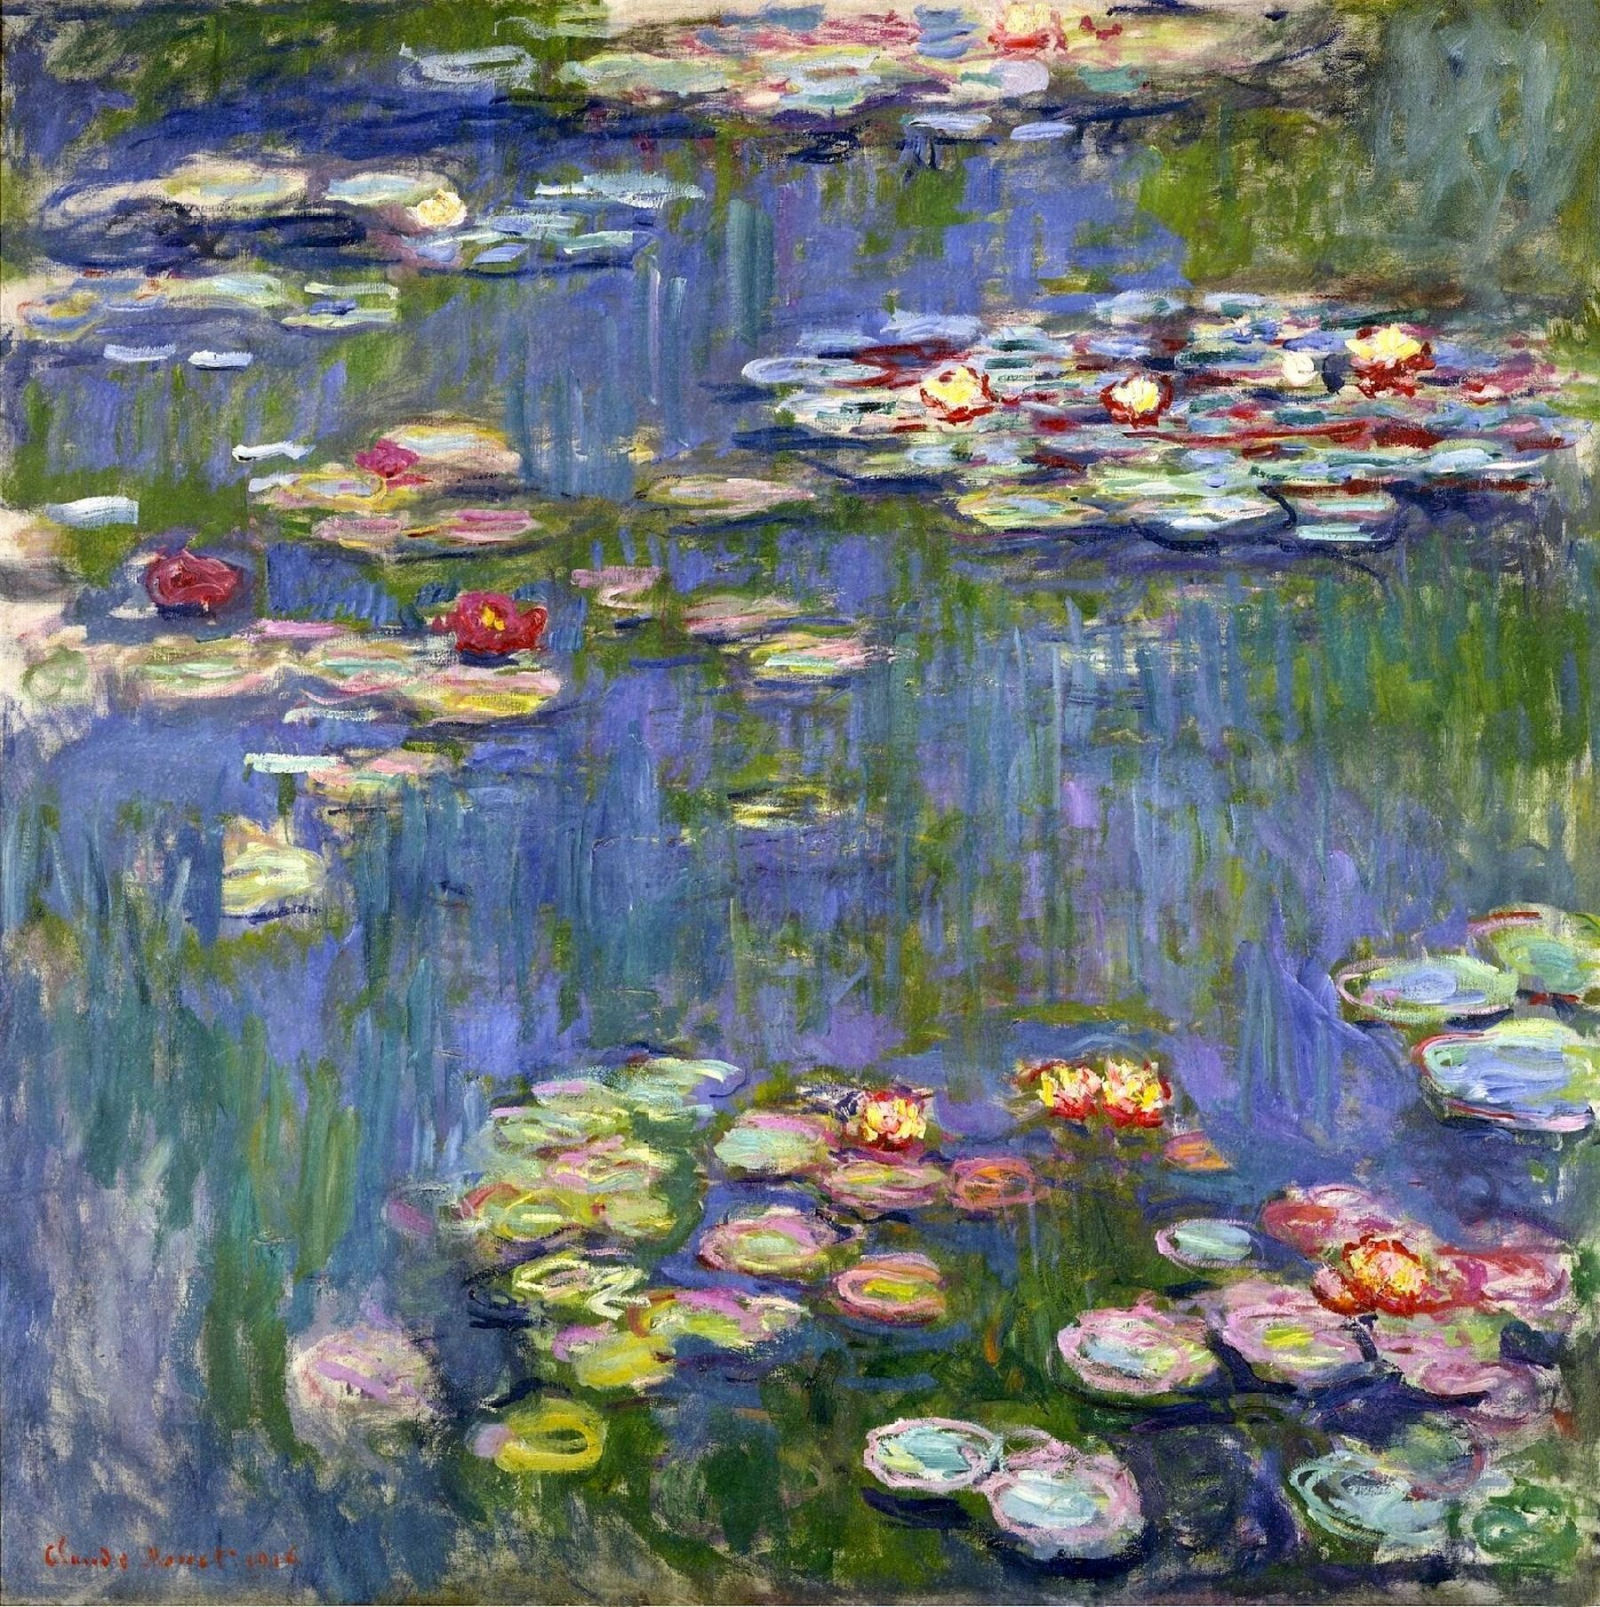 http://uploads7.wikiart.org/images/claude-monet/water-lilies-40.jpg